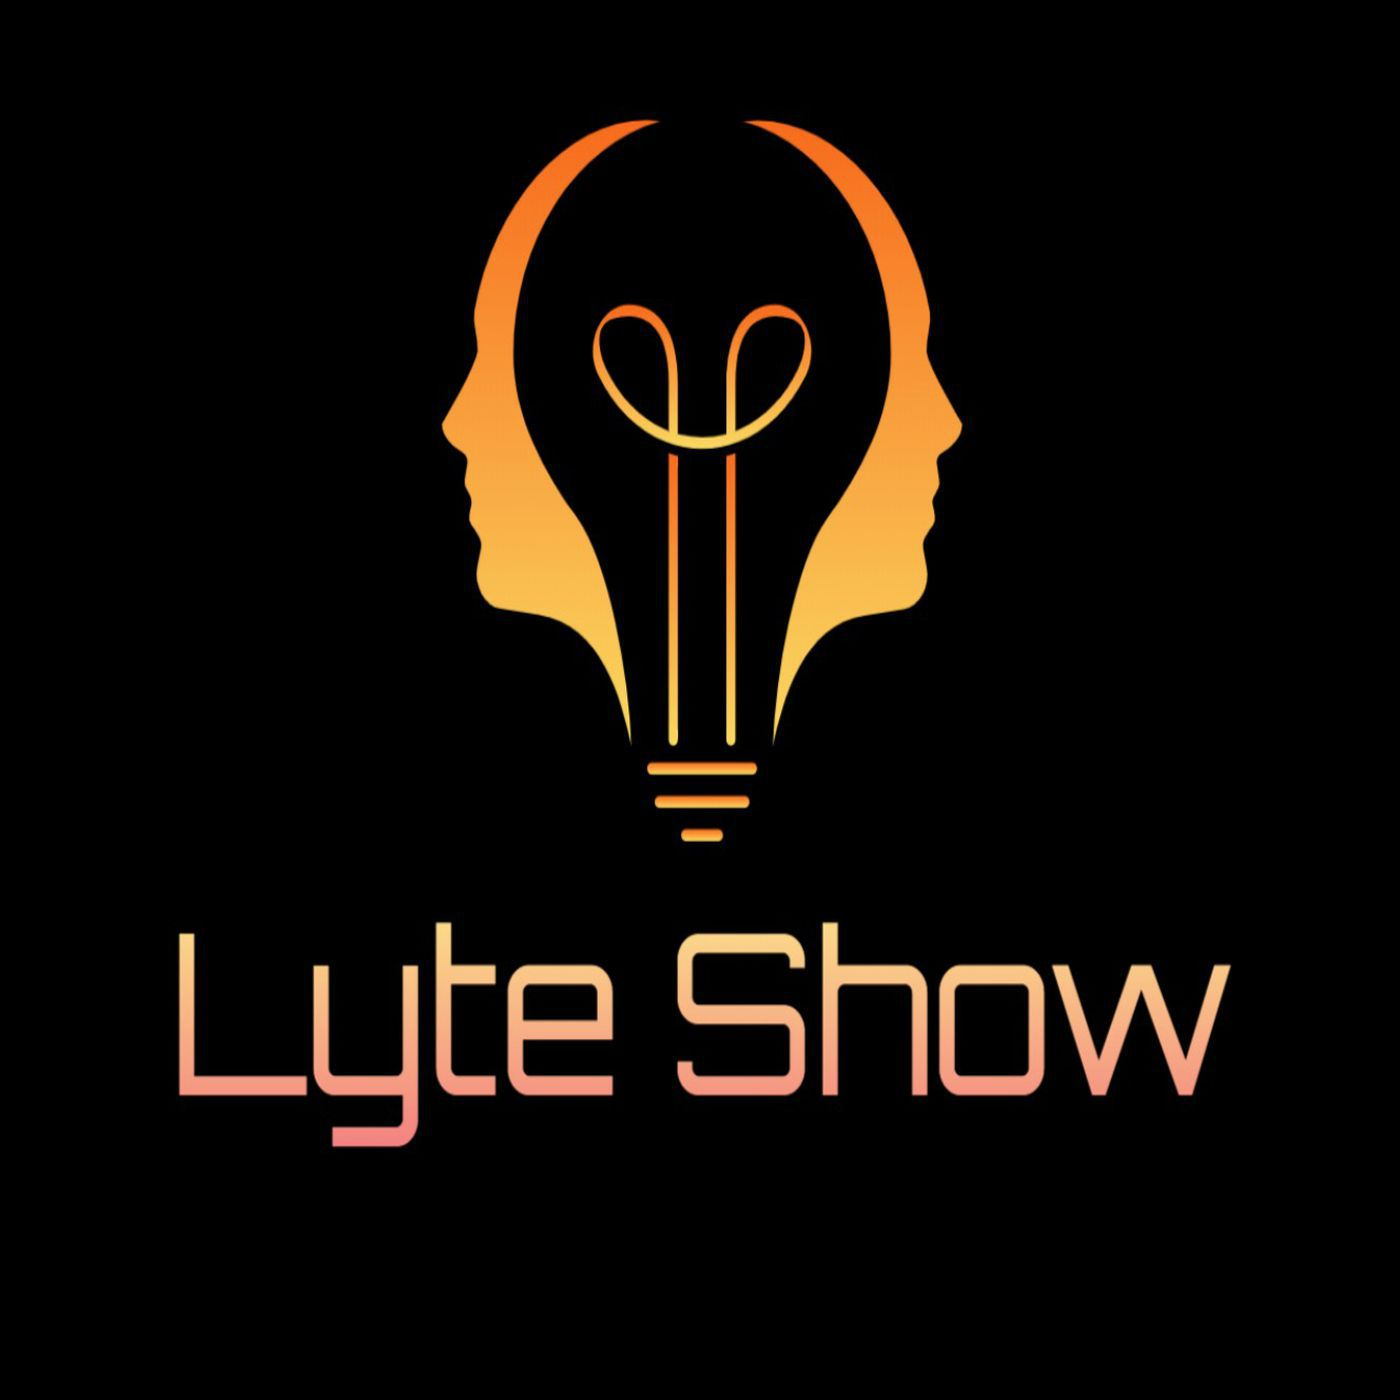 The Lyte Show